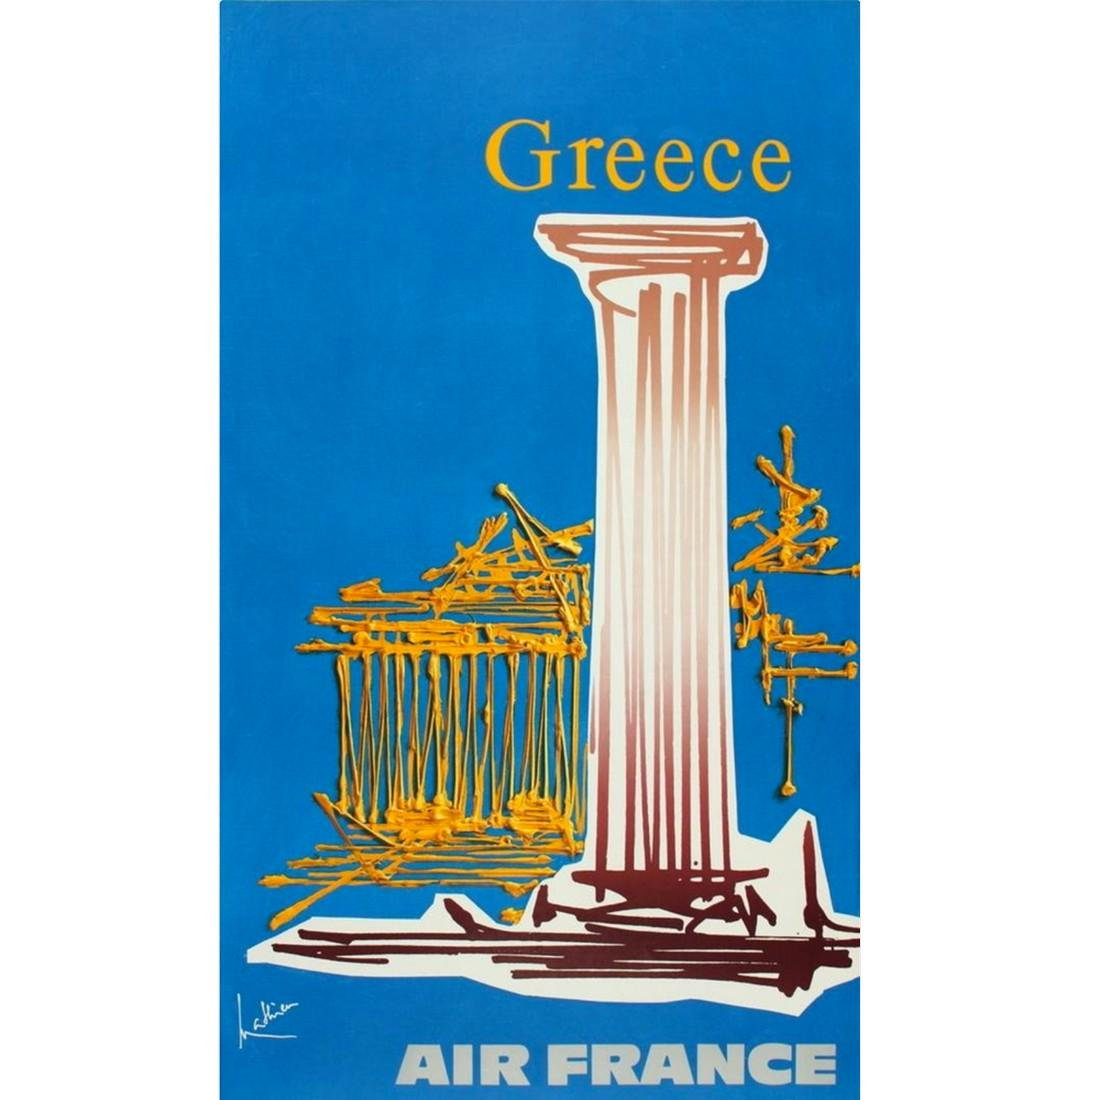 Air France GREECE Travel Poster 1967